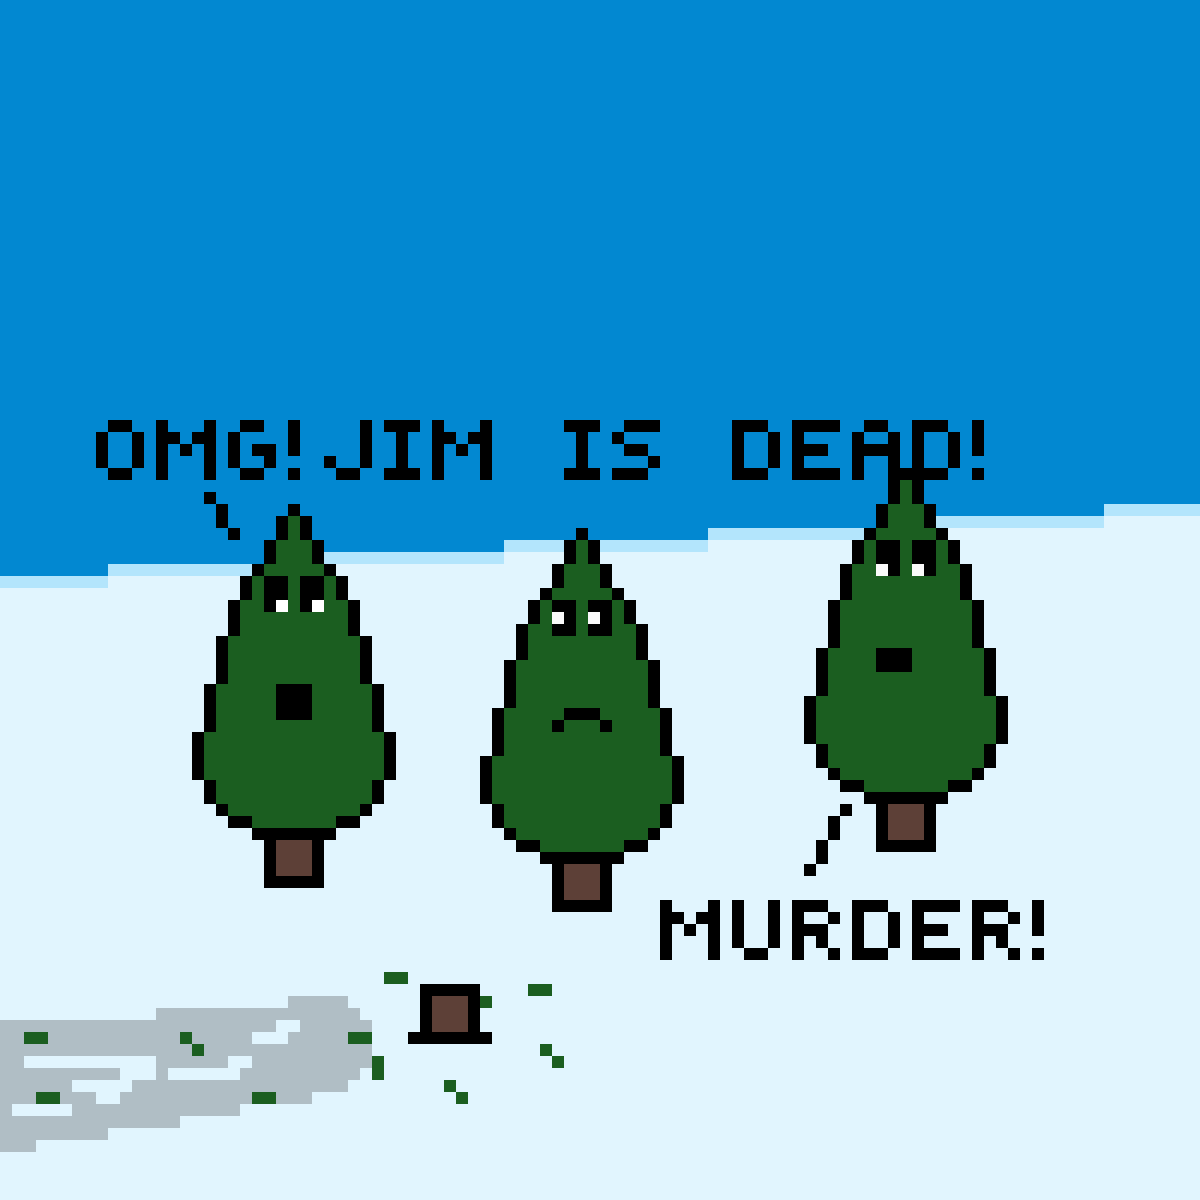 Jim was murdered!! by AceEverwoode